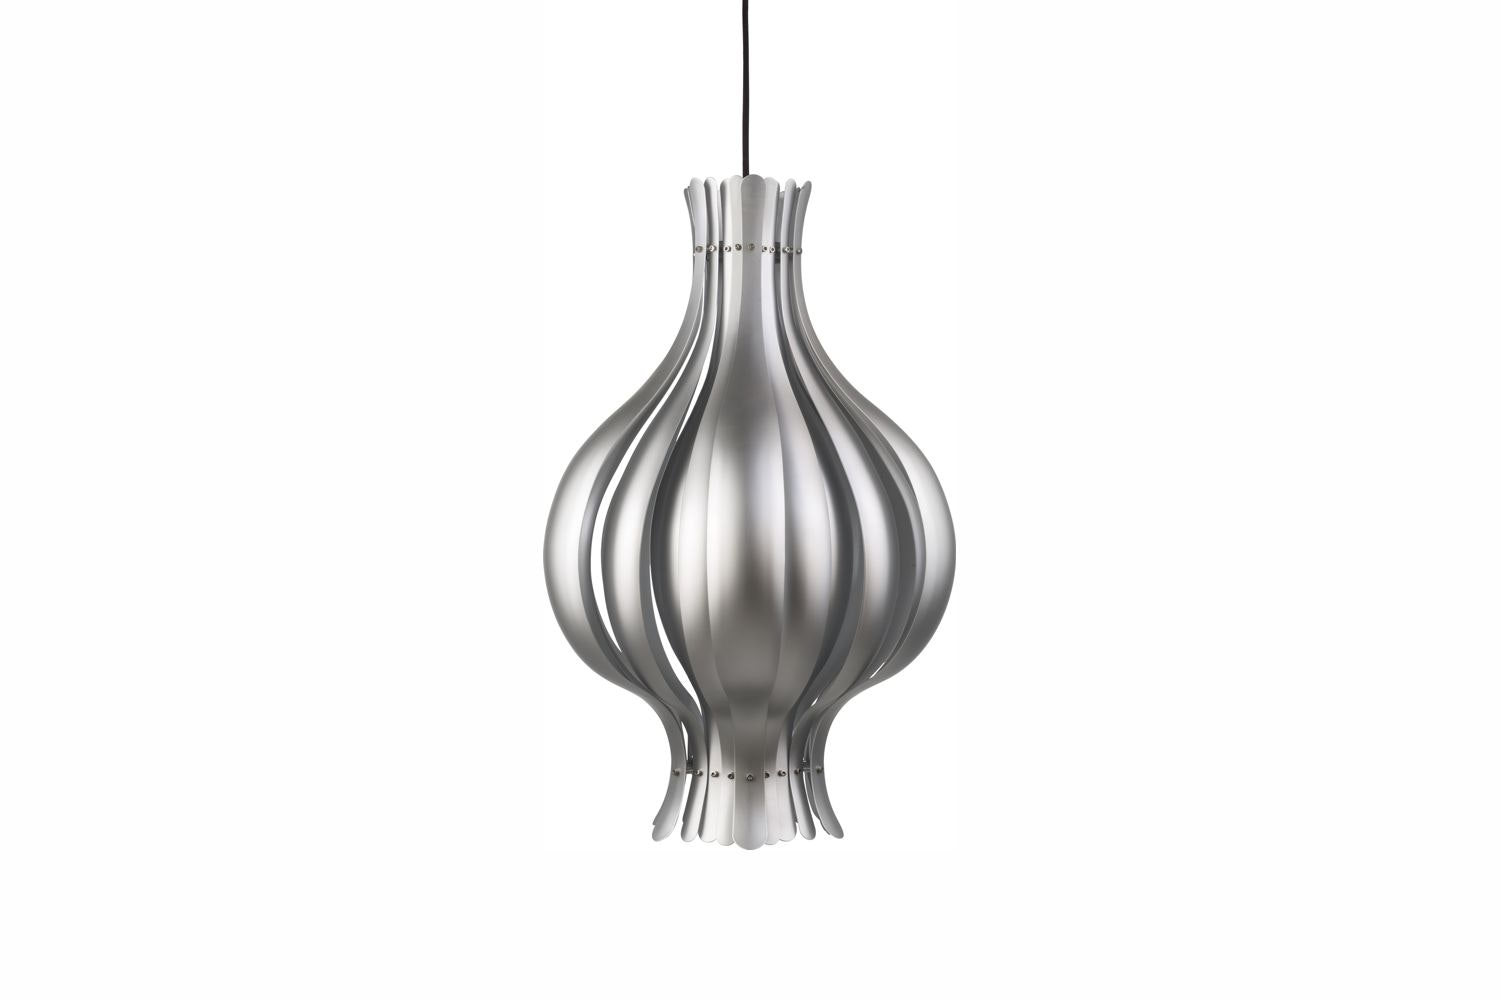 Onion Small Pendant Lamp in Silver by Verner Panton for Verpan